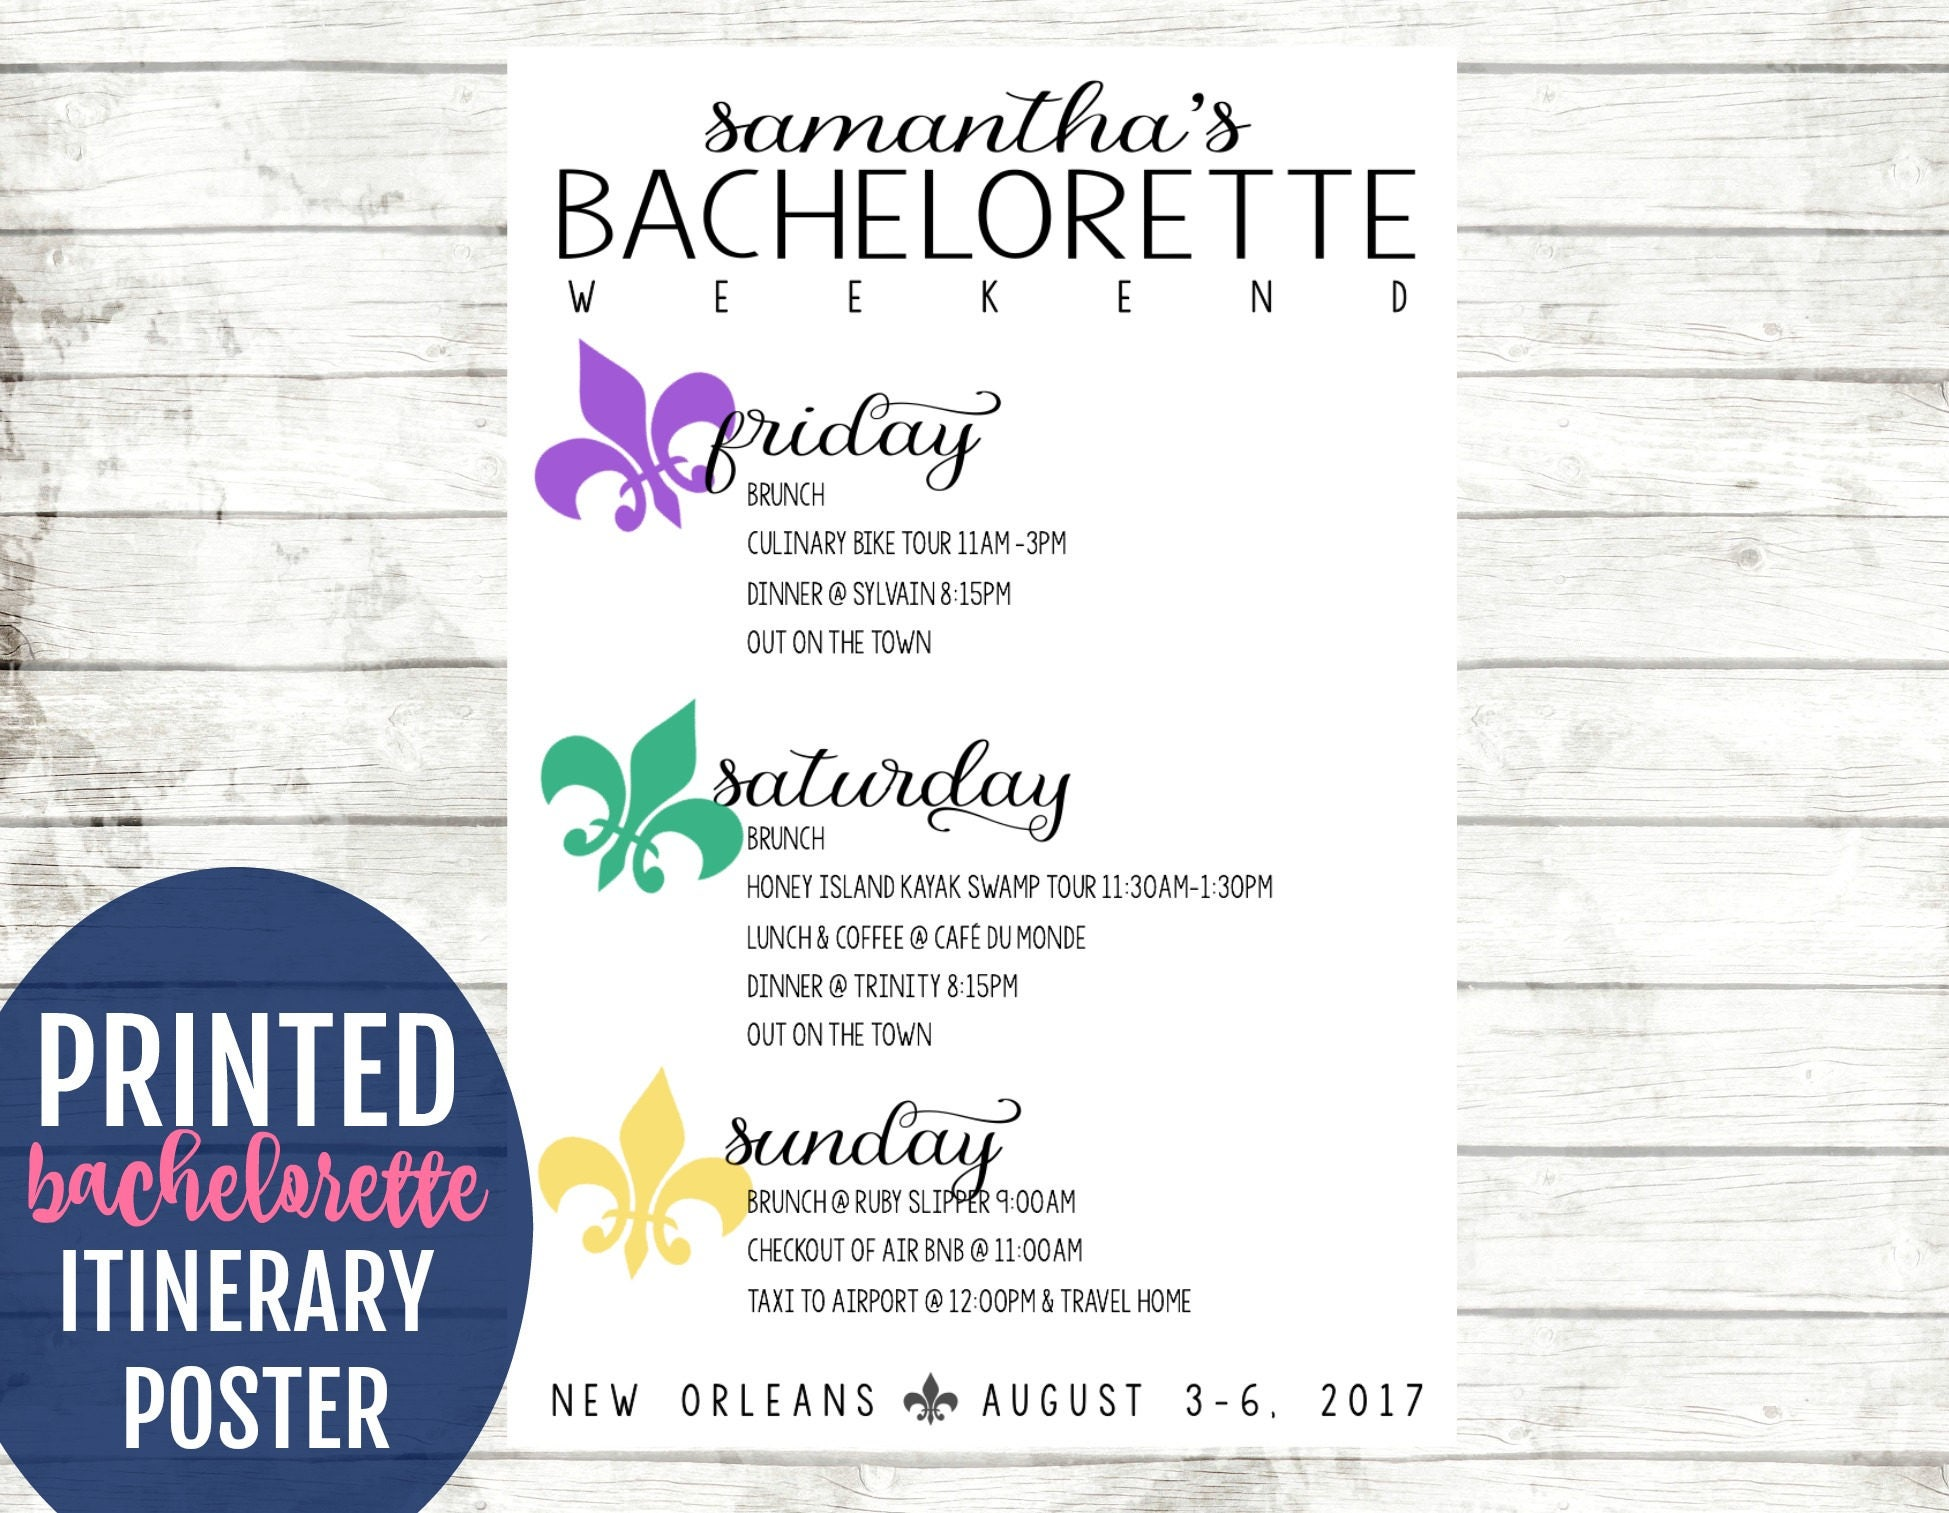 NOLA Bachelorette Weekend Itinerary Sign. New Orleans